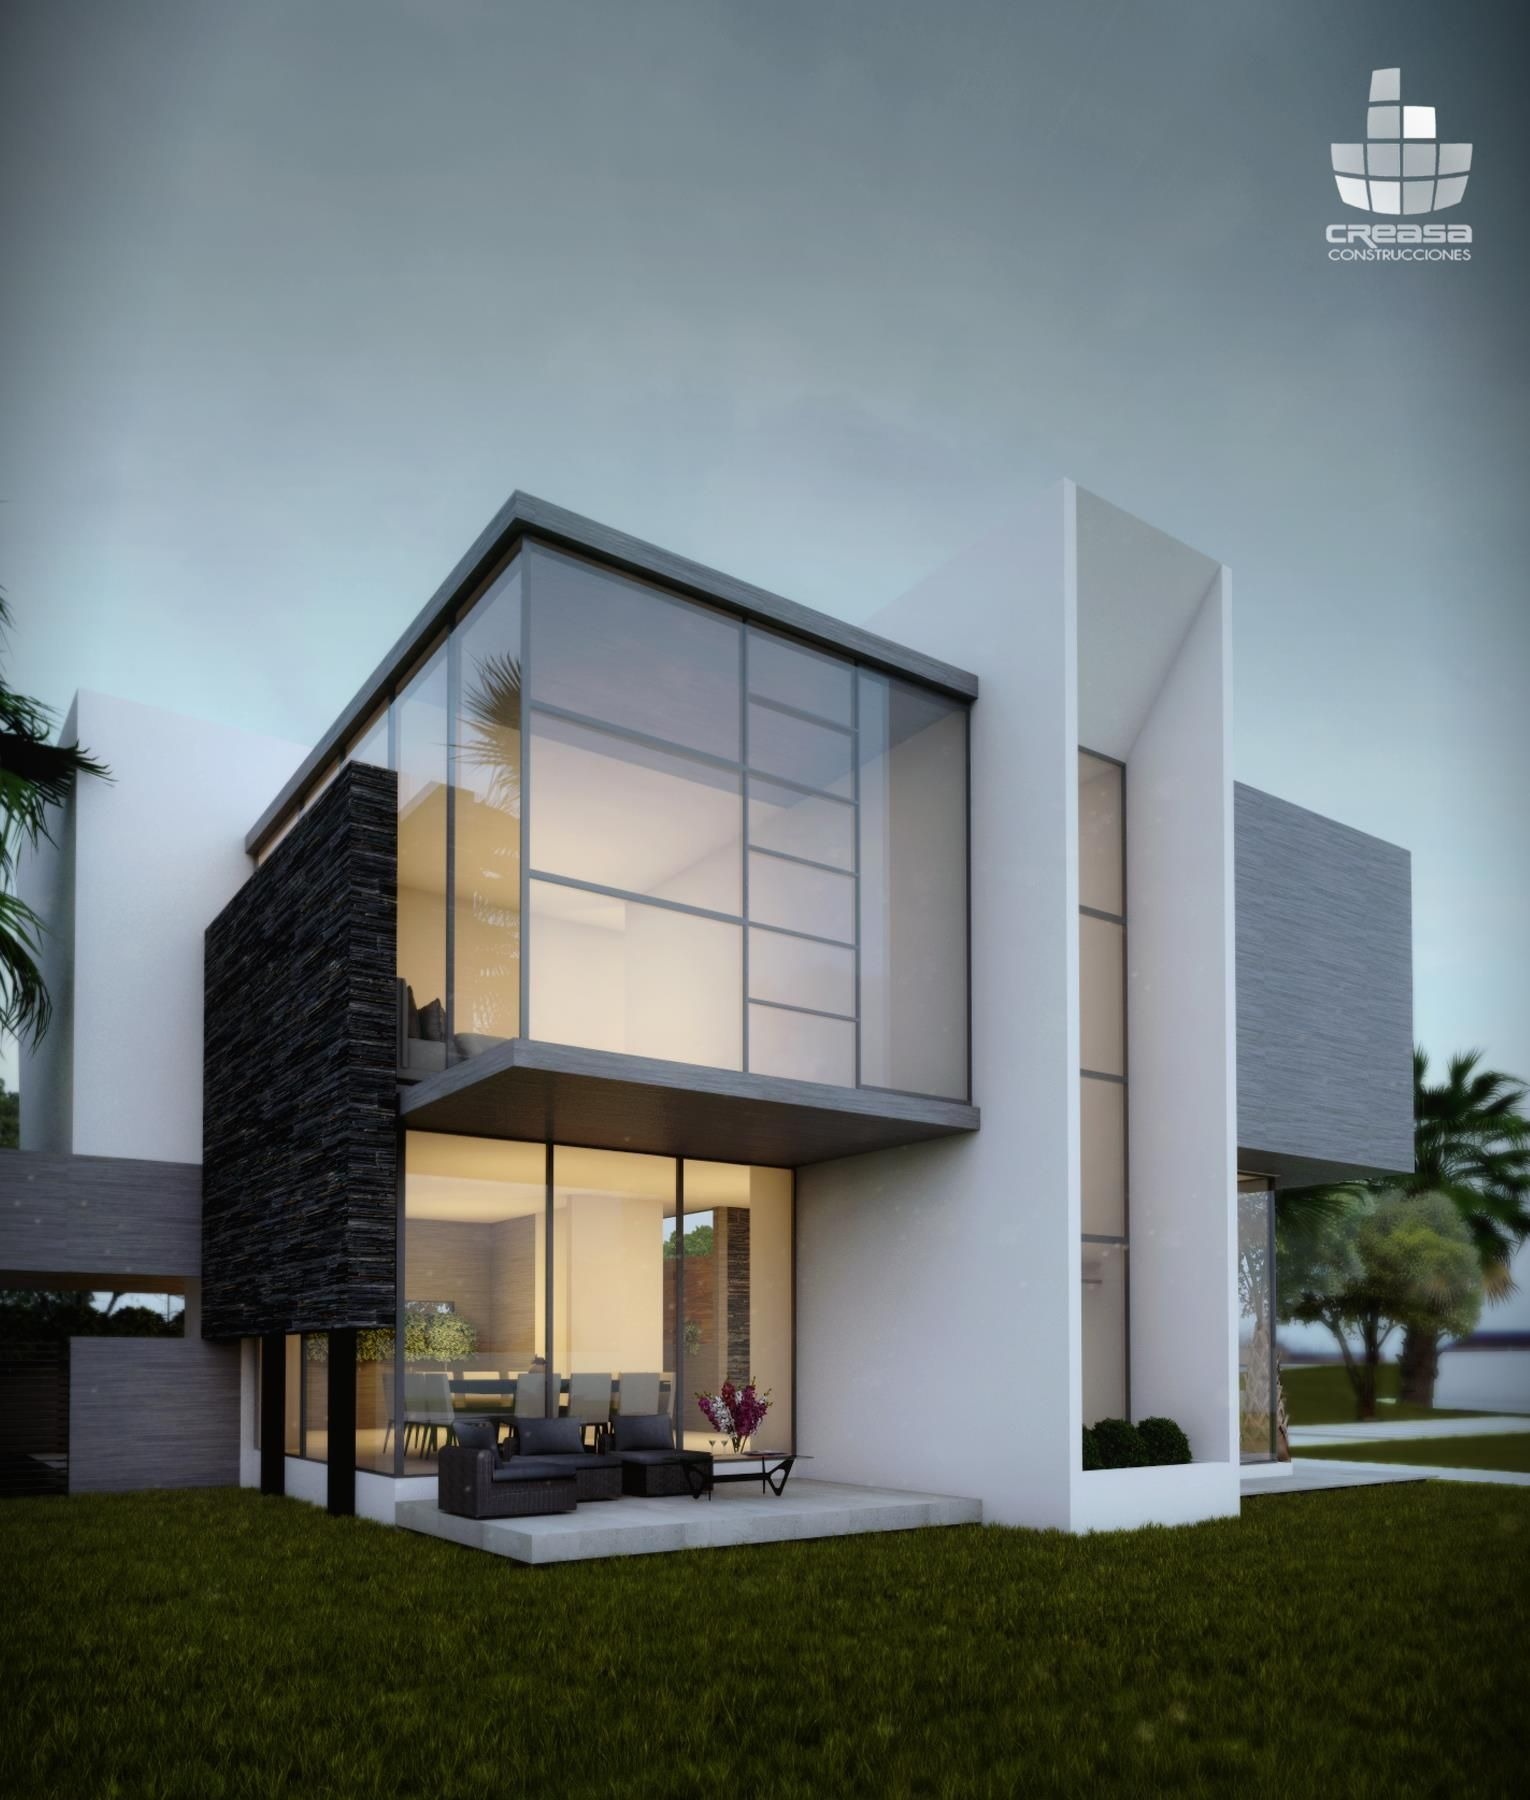 Creasa modern architecture pinterest villas house for Looking for an architect to design a house